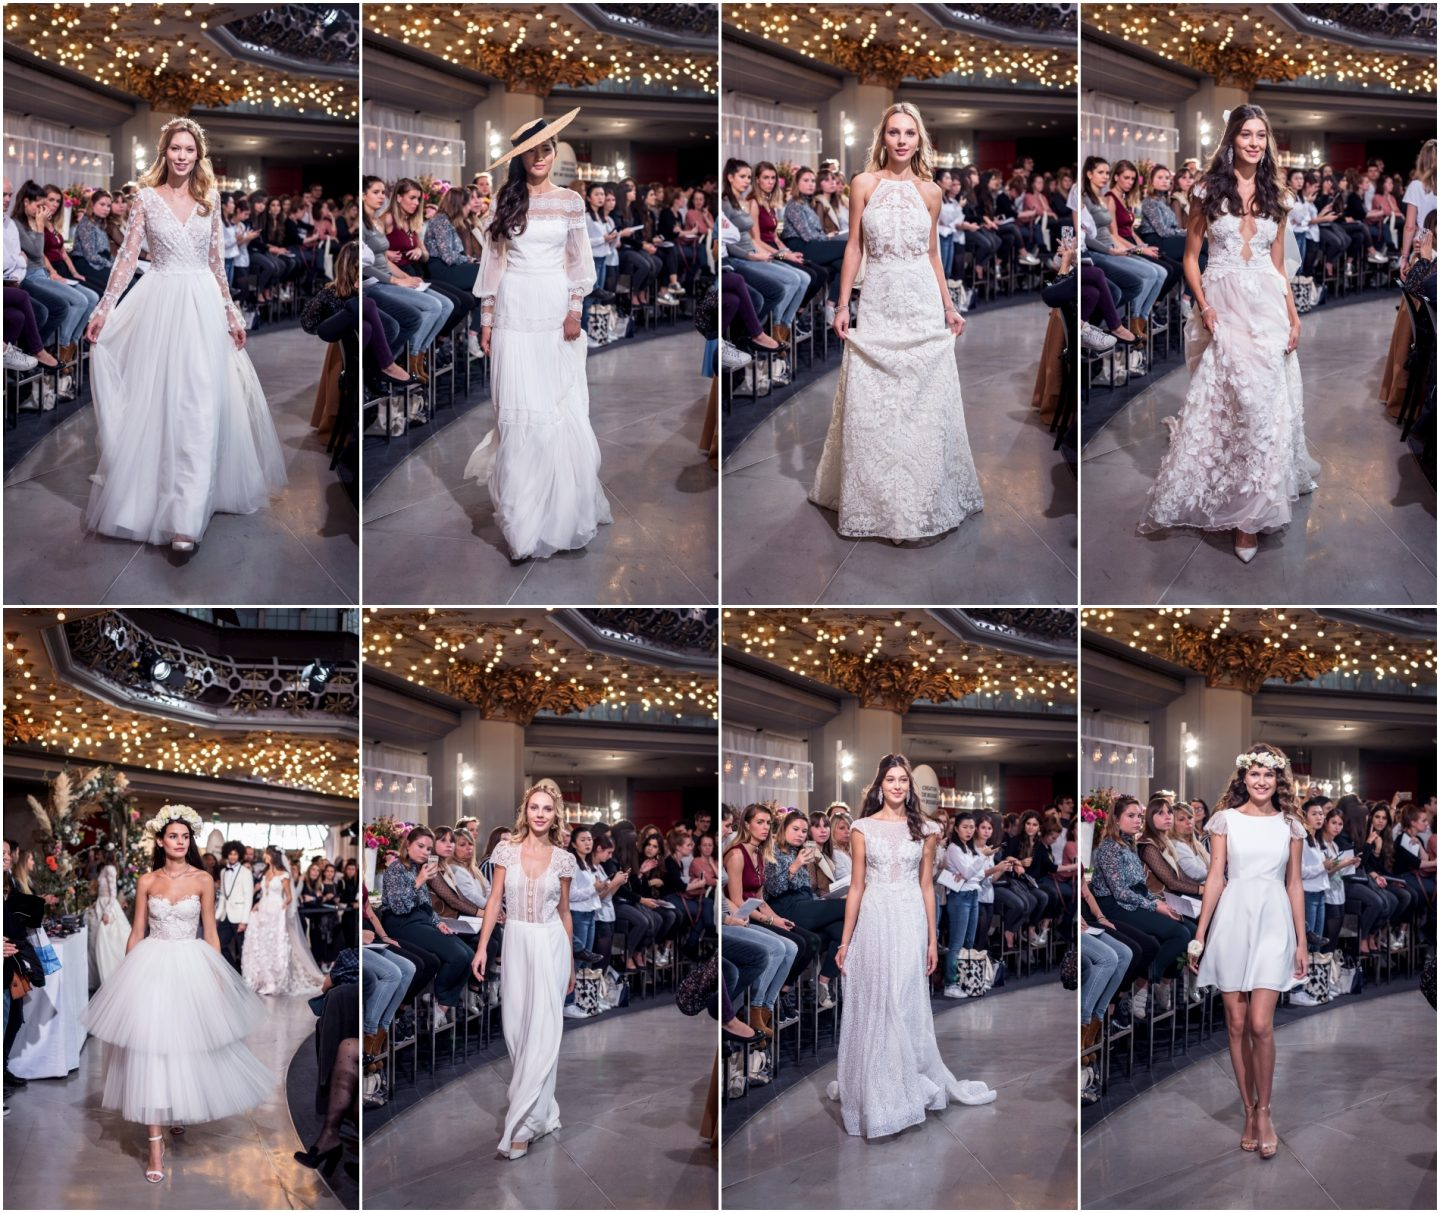 wedding fashion show